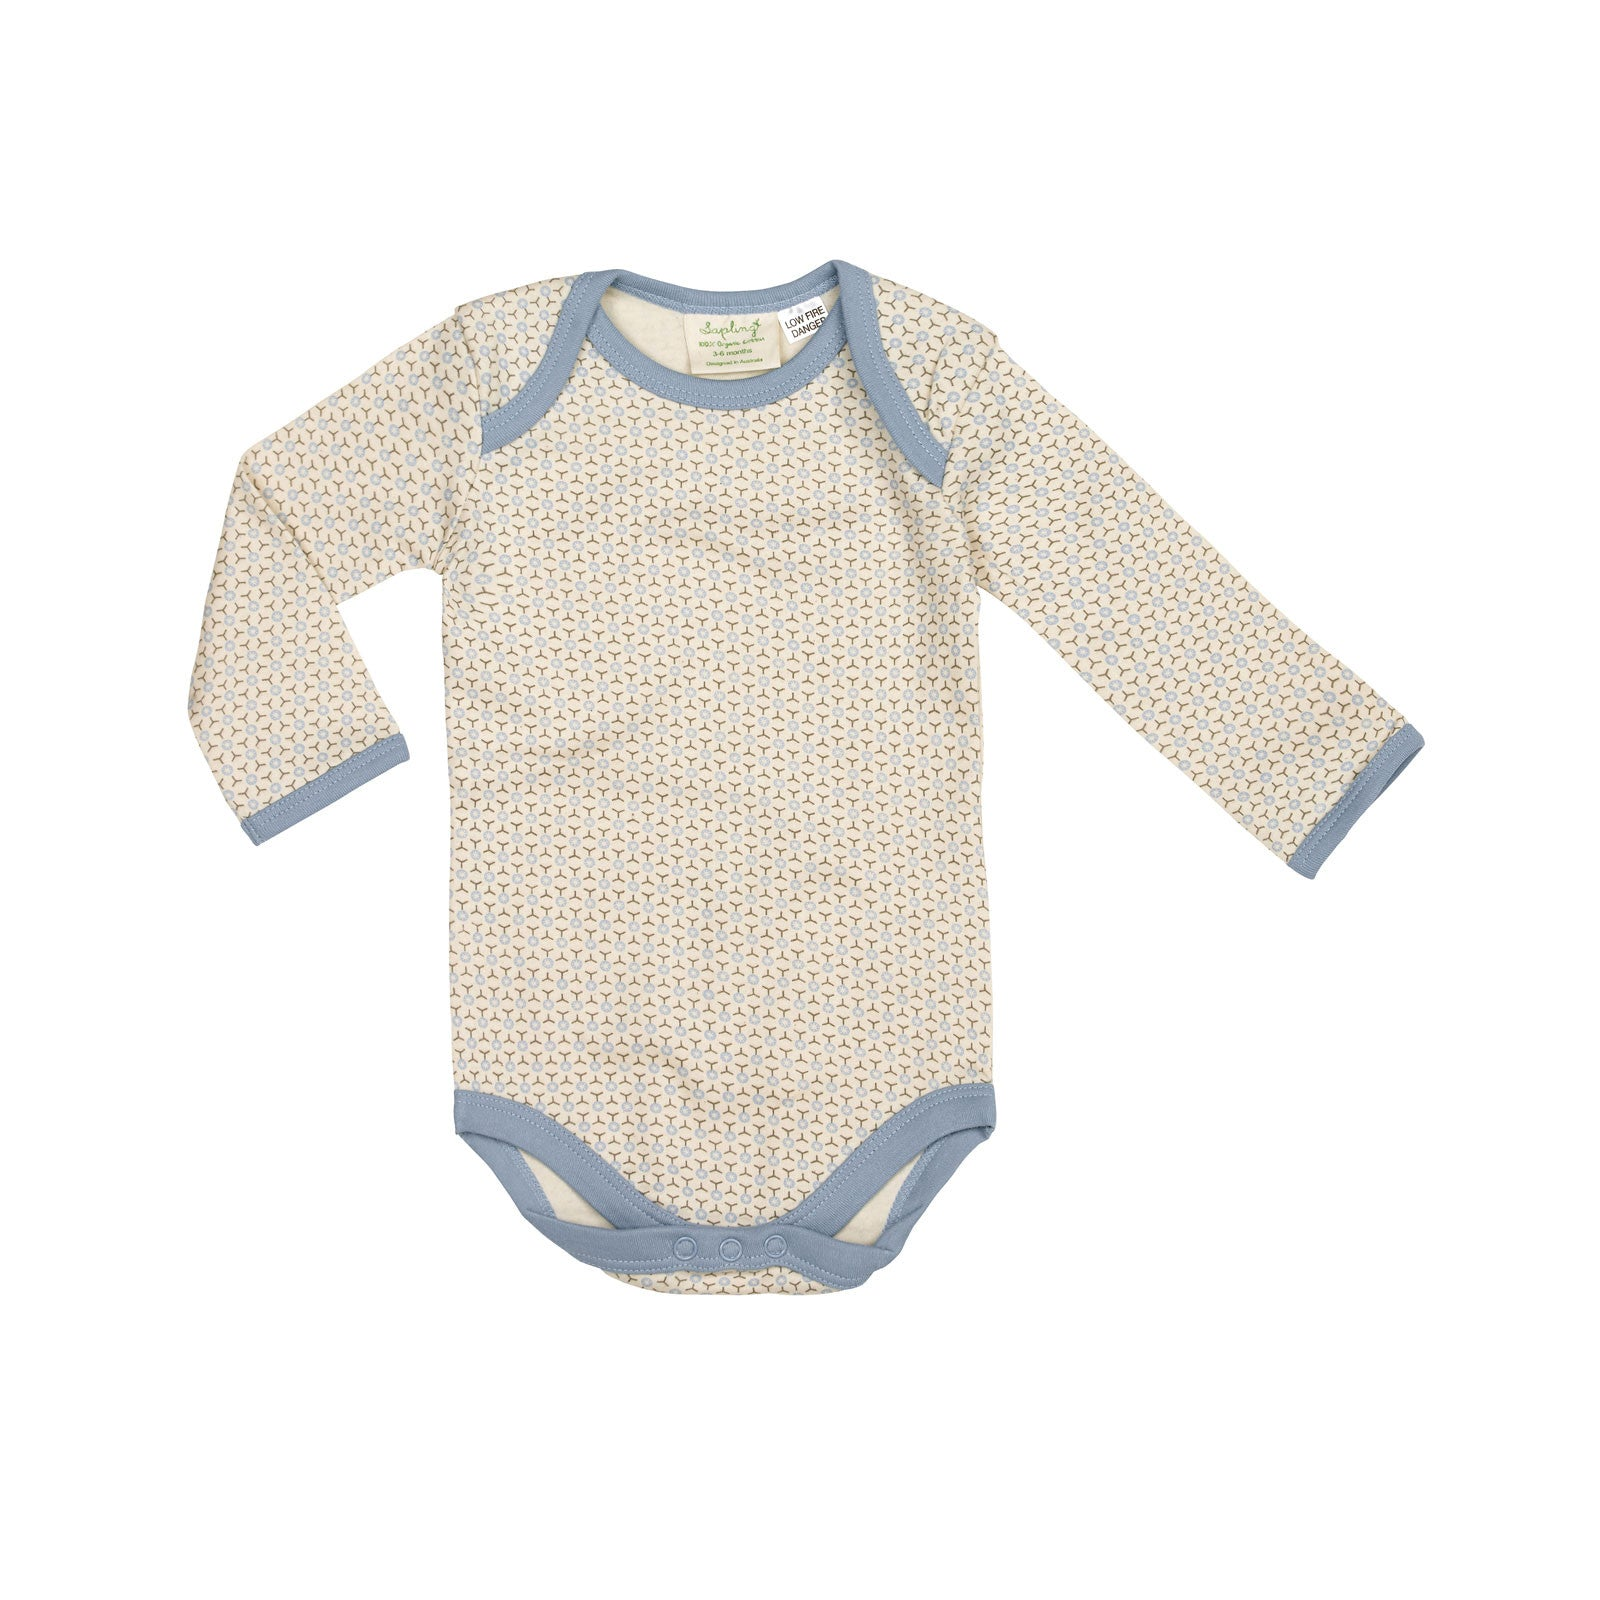 Sapling Child Essentials Long Sleeve Bodysuit Sapling Child General 0-3M / Little Boy Blue at Little Earth Nest Eco Shop